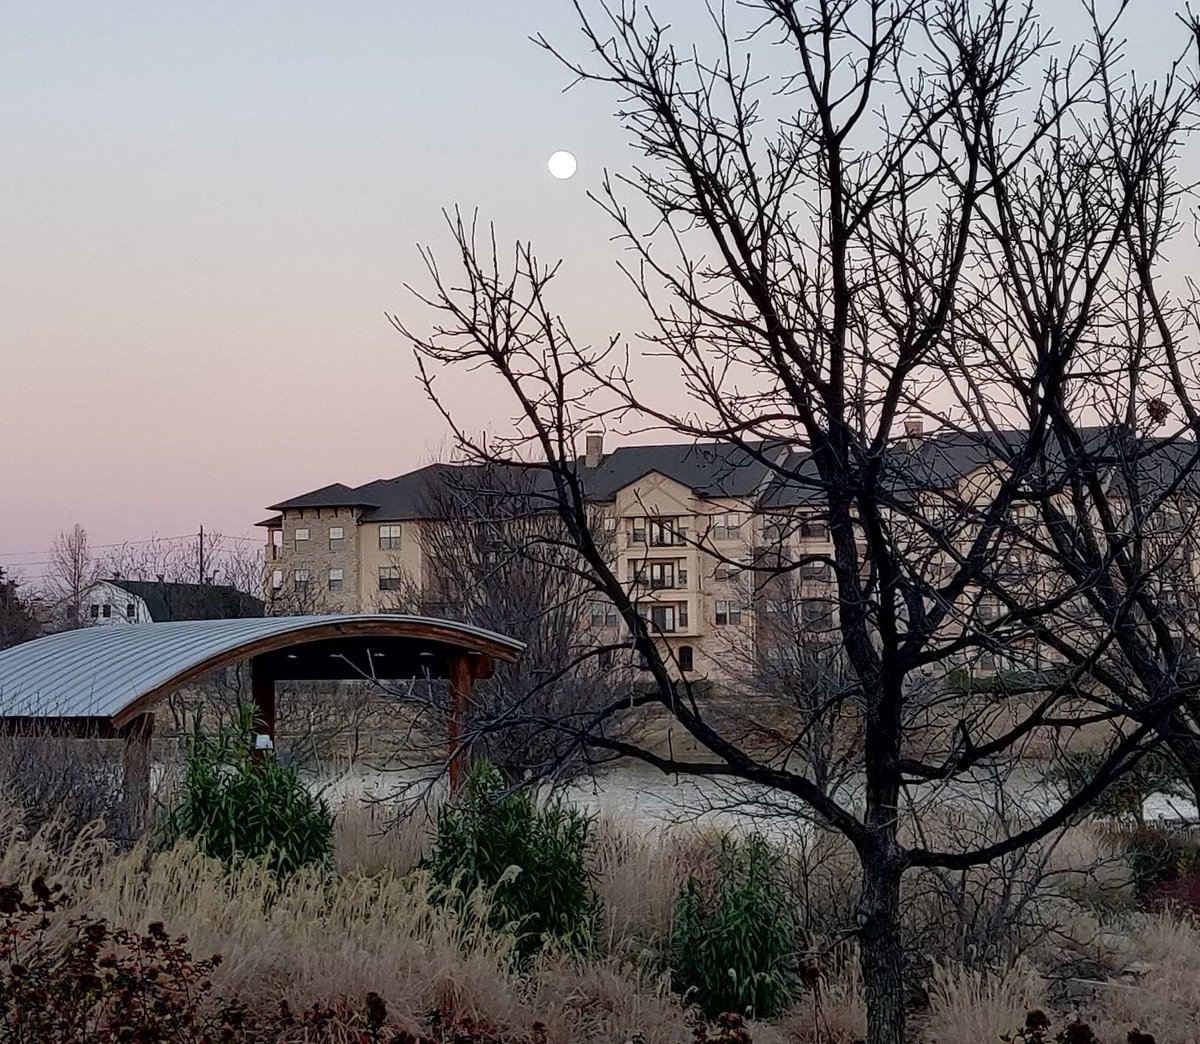 #FullMoon and Winter #Sunset view over the lake at the library 💜 #nofilter